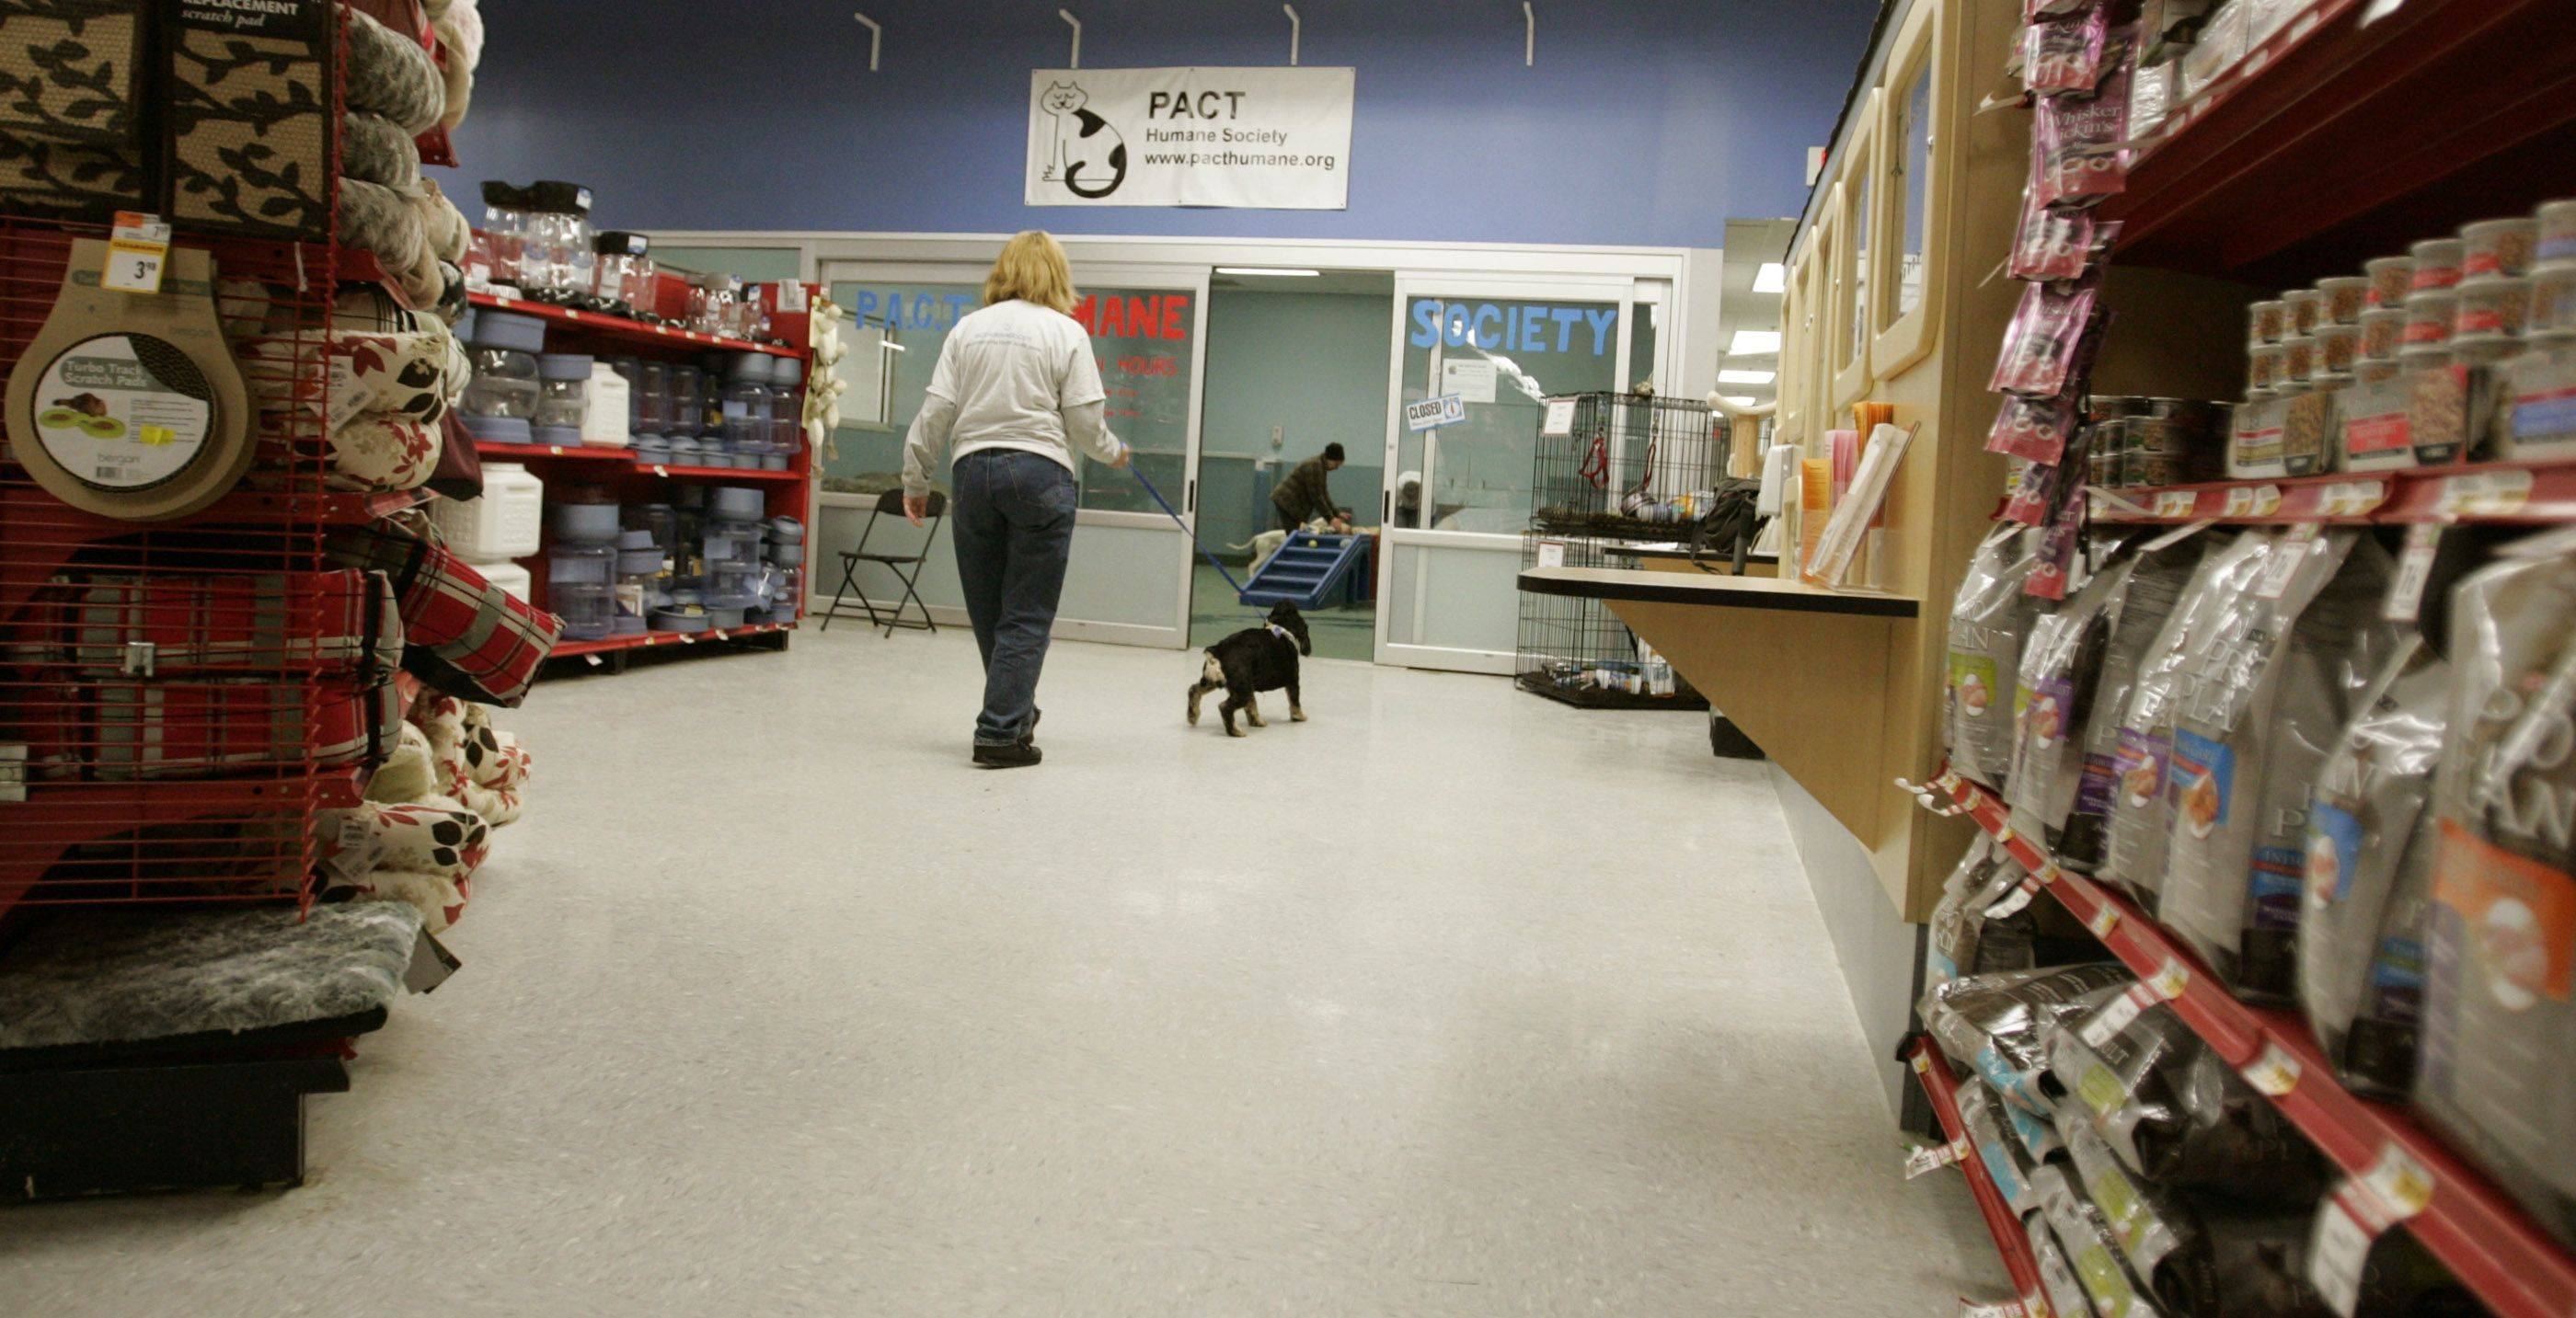 The new PACT Humane Society, which stands for People and Animals in Community Together, opened last fall inside the Petco store, 412 W. Army Trail Road, Bloomingdale.